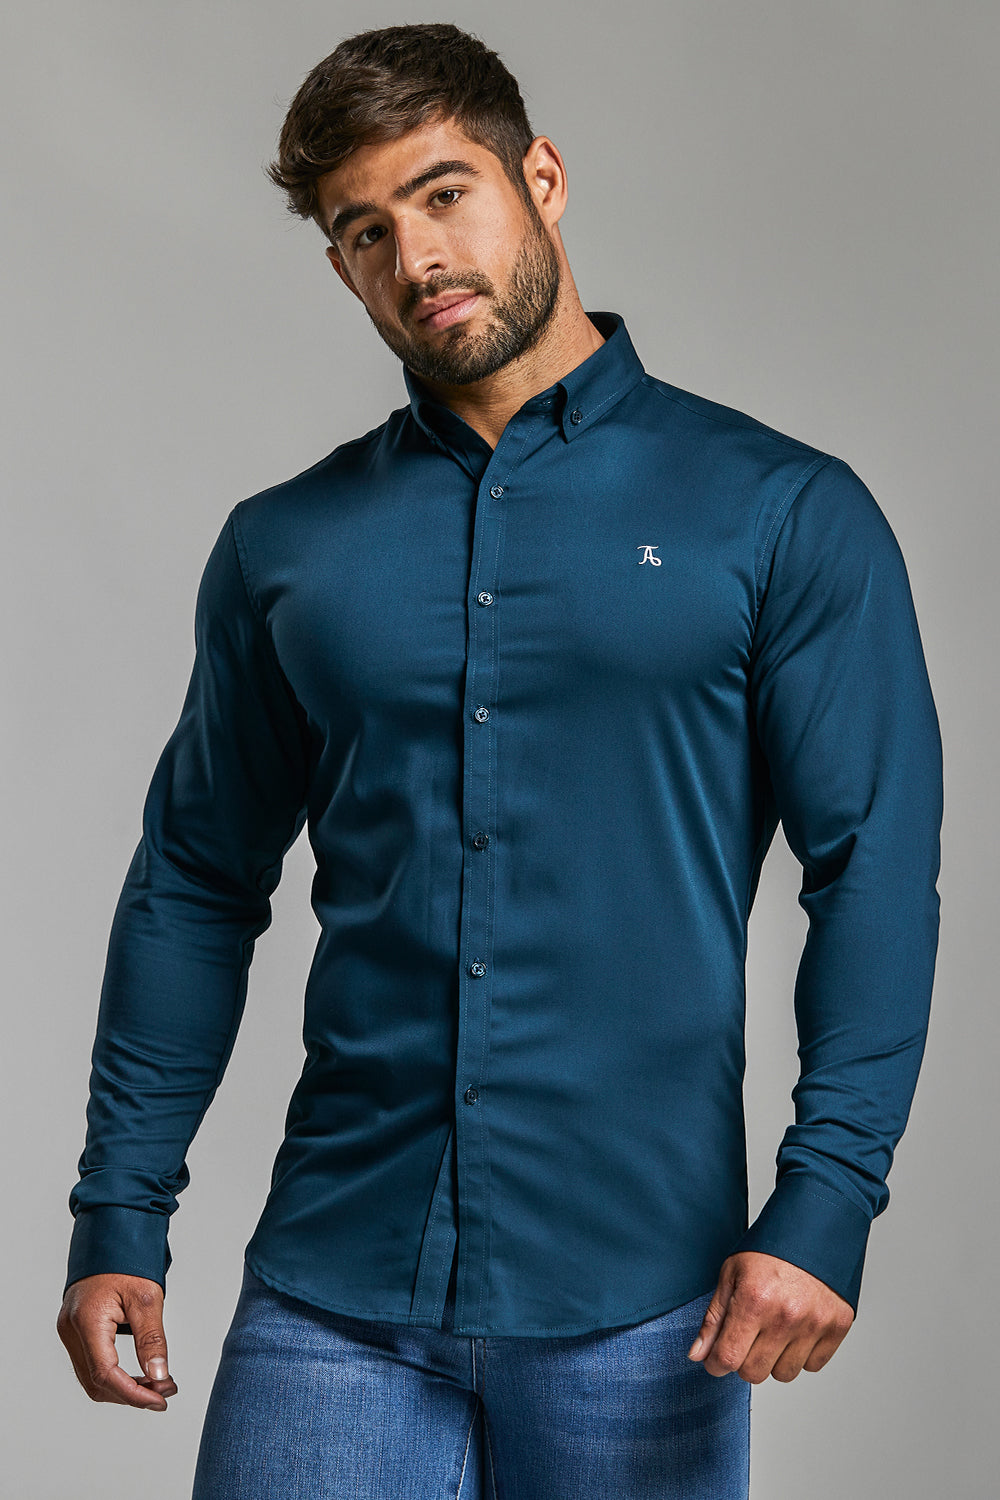 Bamboo Signature Shirt (Limited Edition) in Teal